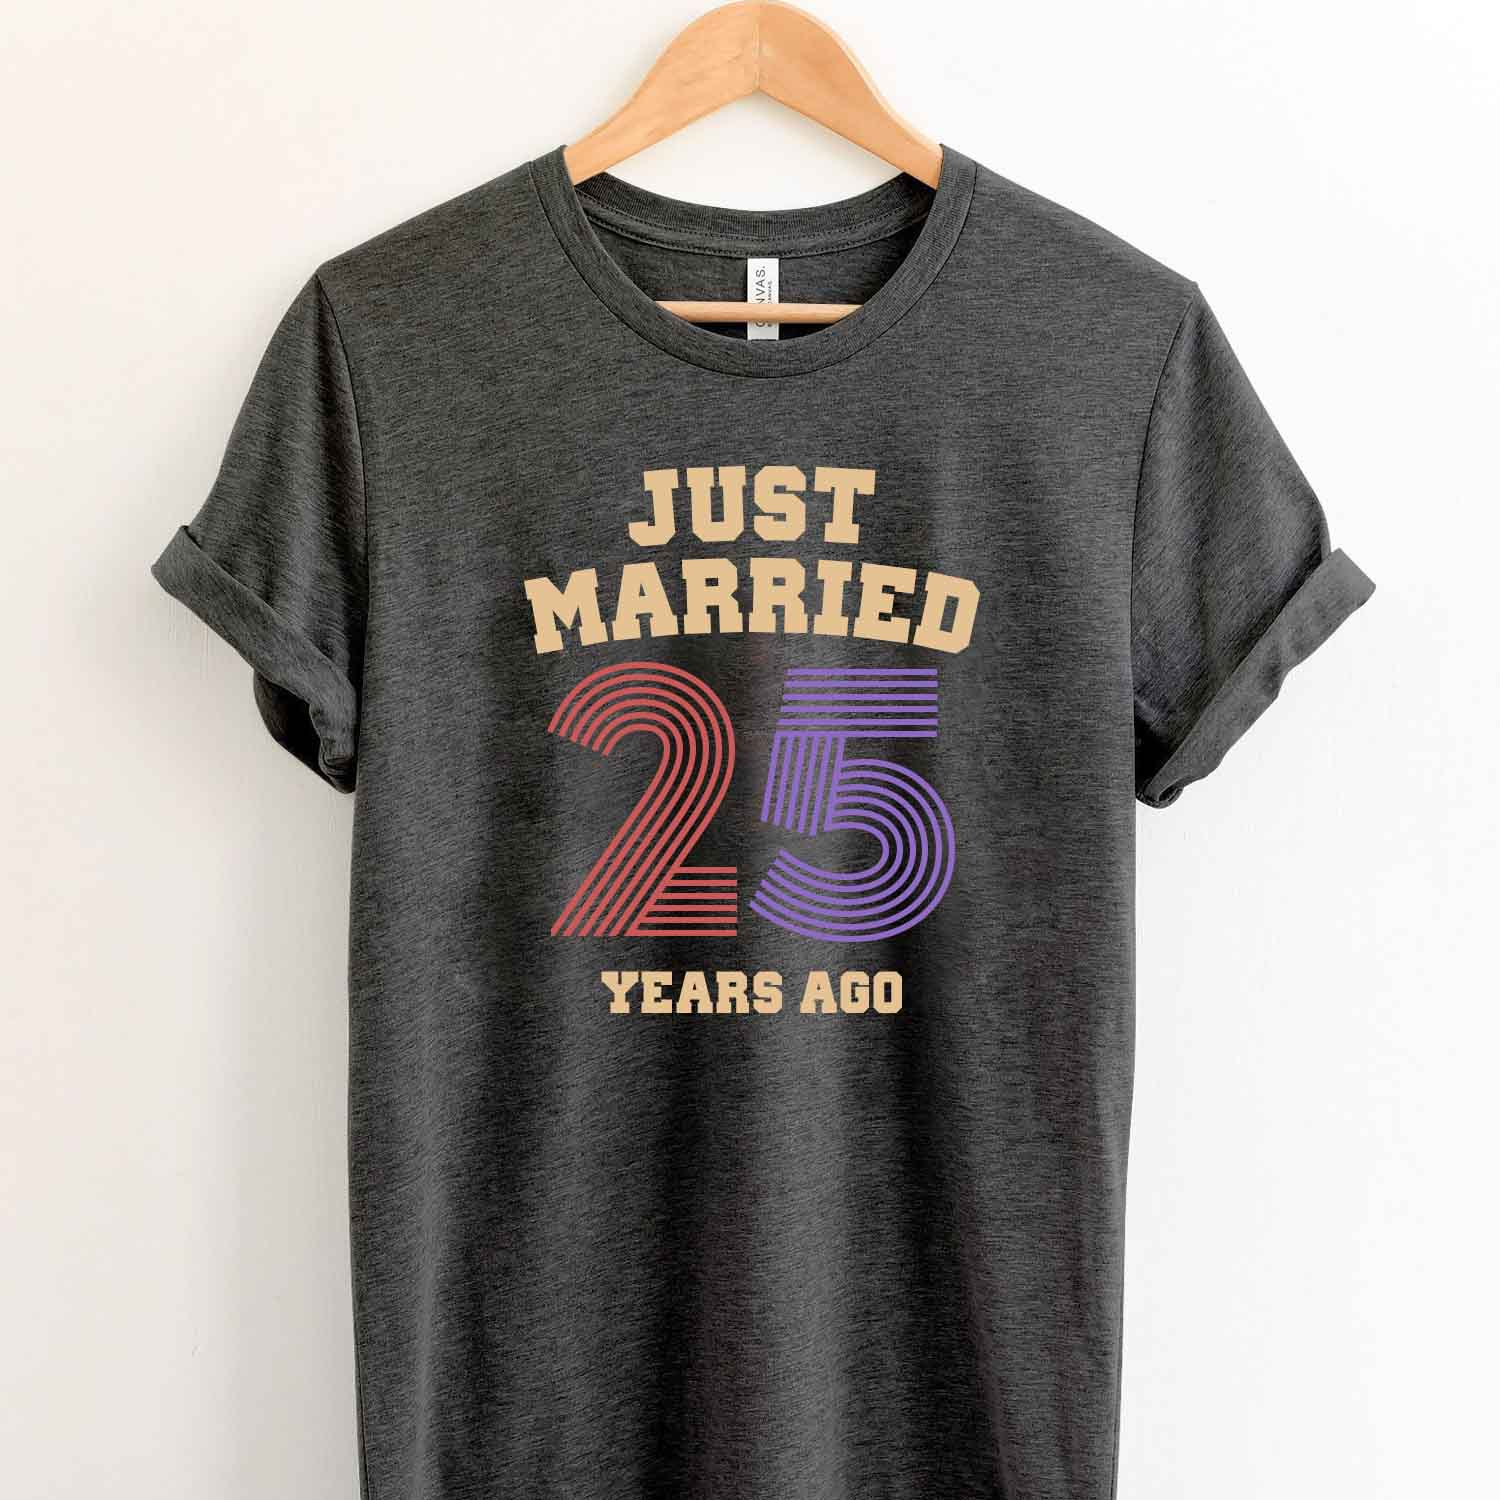 Just Married 25 Years Ago 1994 T Shirt Perfect Sweet Romantic Gift for Couple Husband Wife